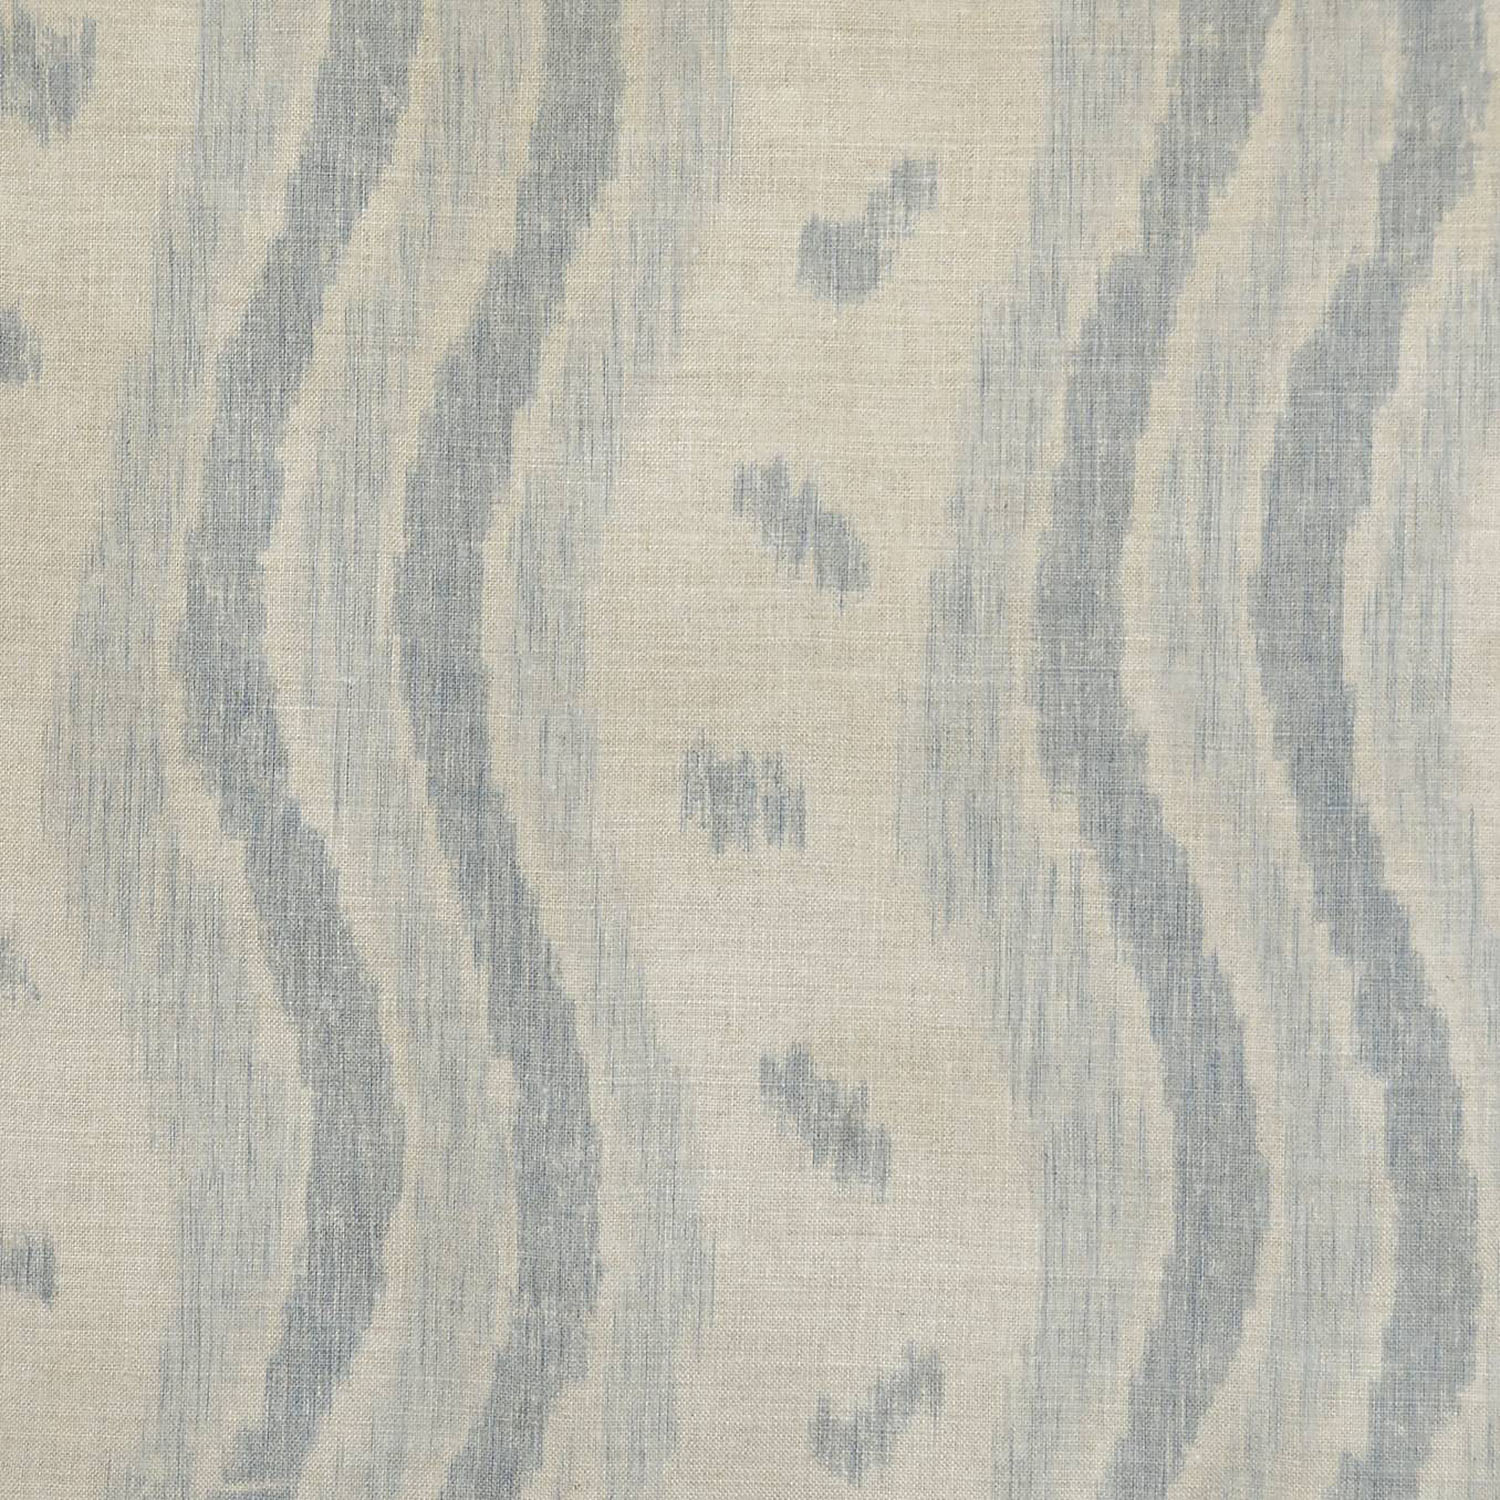 <p><strong>IKAT STRIPE</strong>blue/natural 9300-05<a href=/collection-3/ikat-stripe-blue-natural-9300-05>More →</a></p>